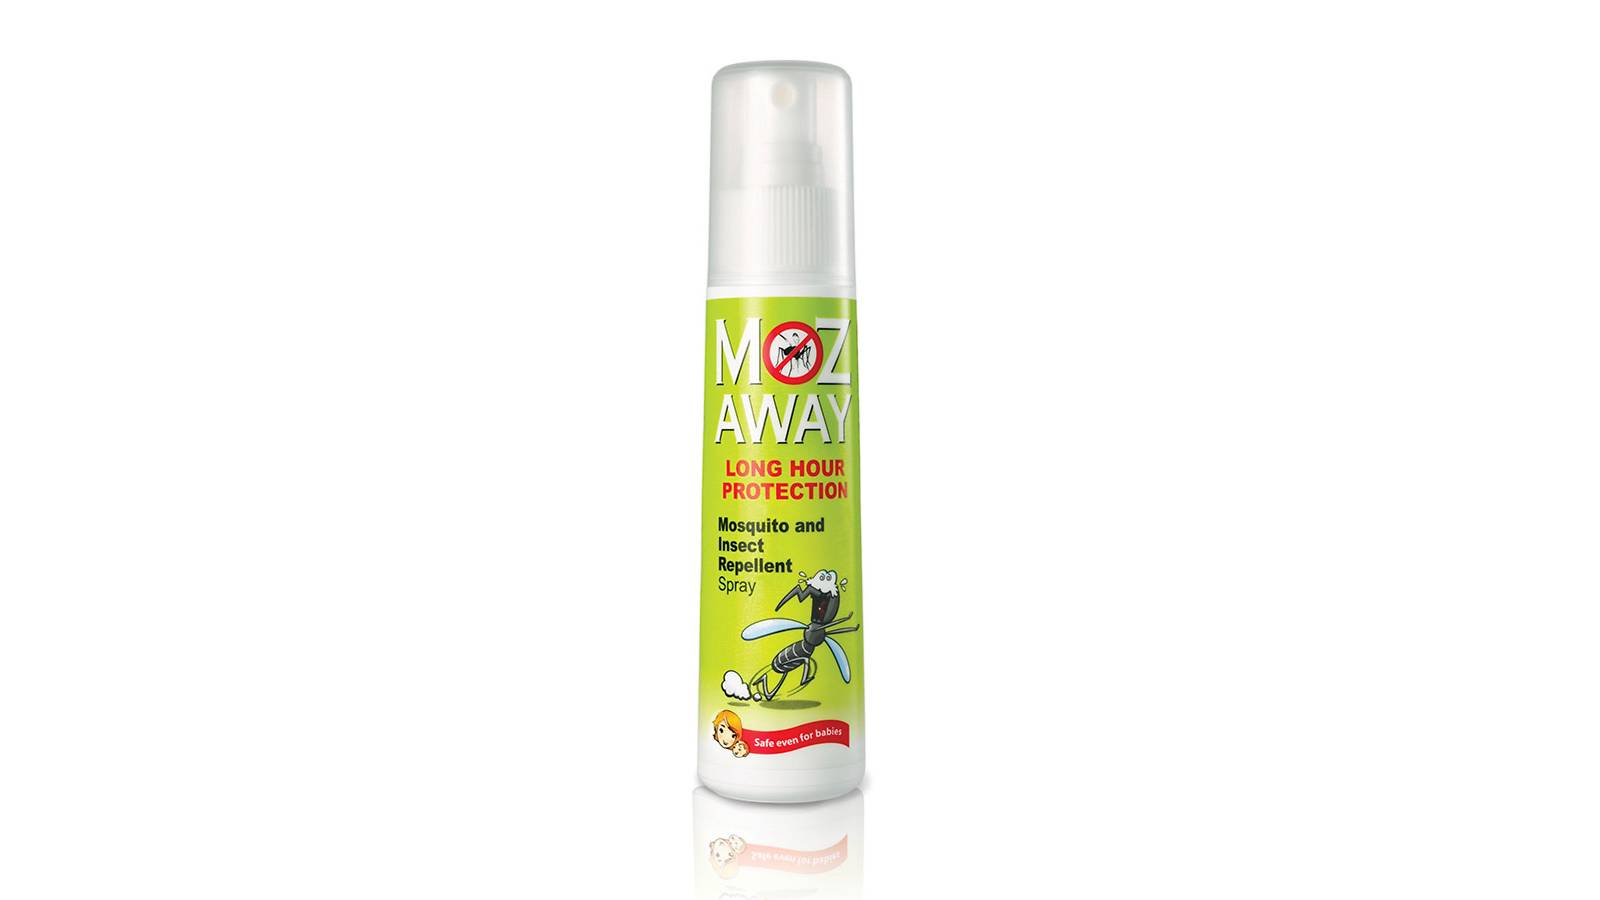 Parents-Banish-mosquitos-with-these-mos-away-spray